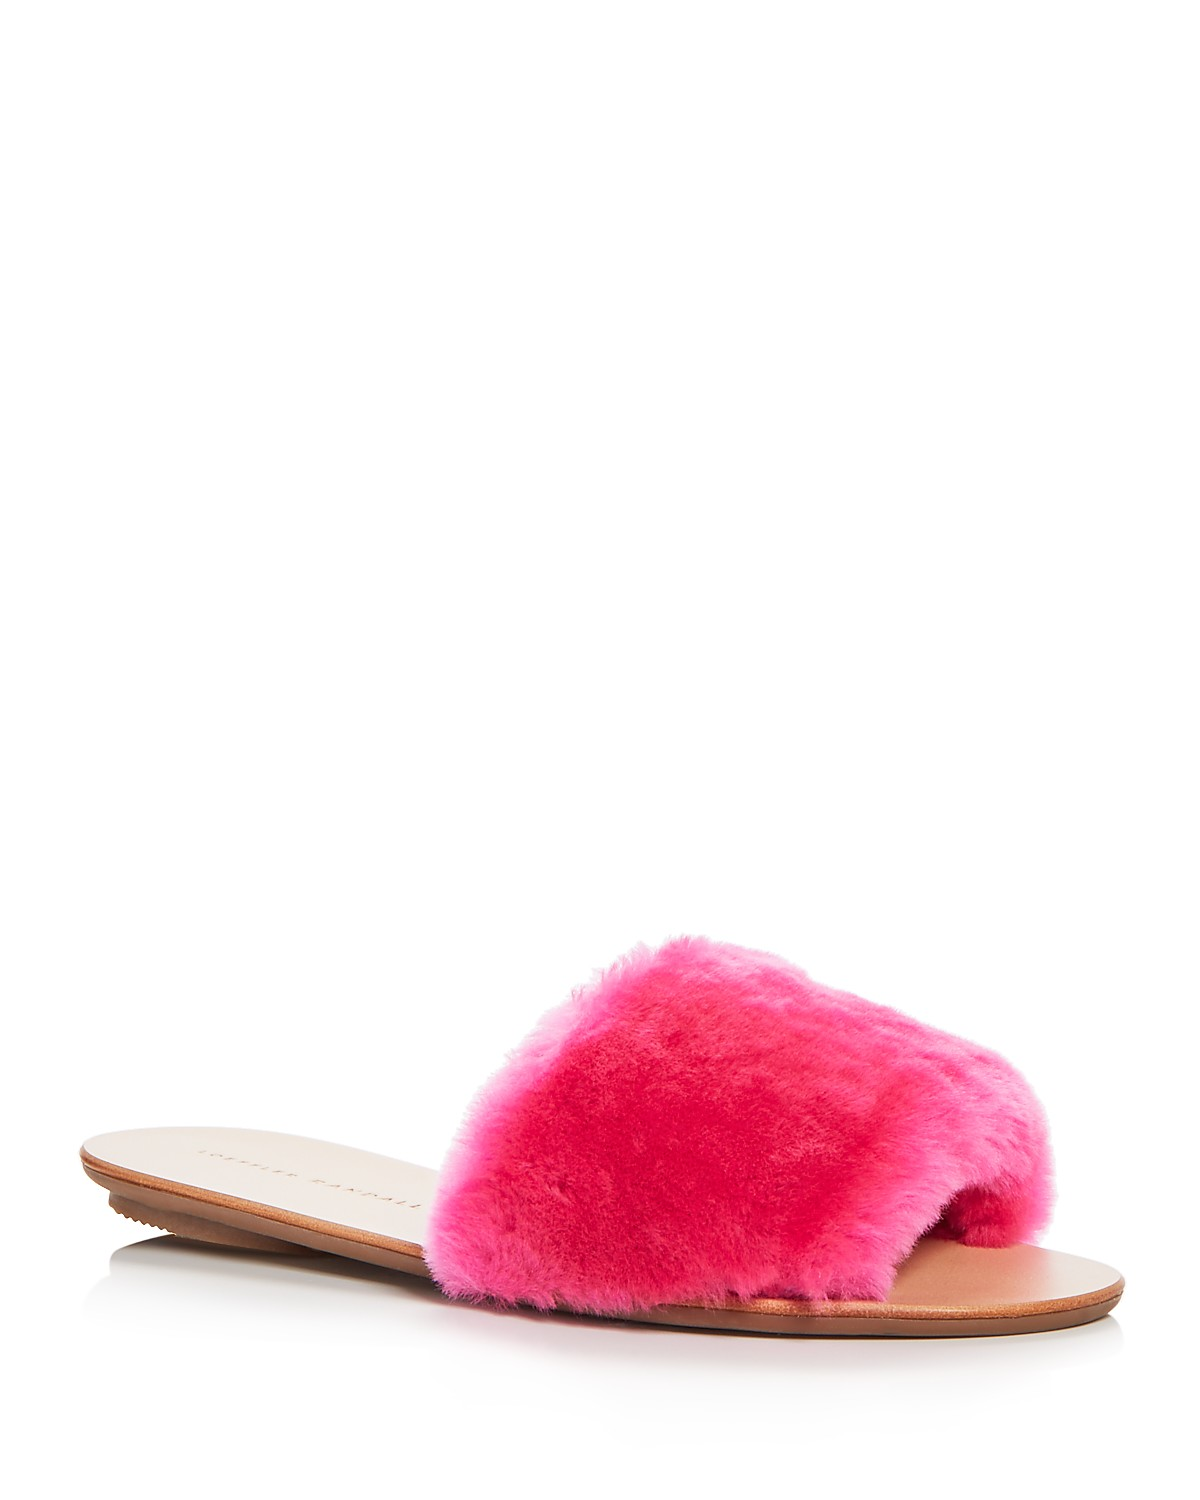 Loeffler Randall Women's Isabel Shearling Slide Sandals Brhyi5